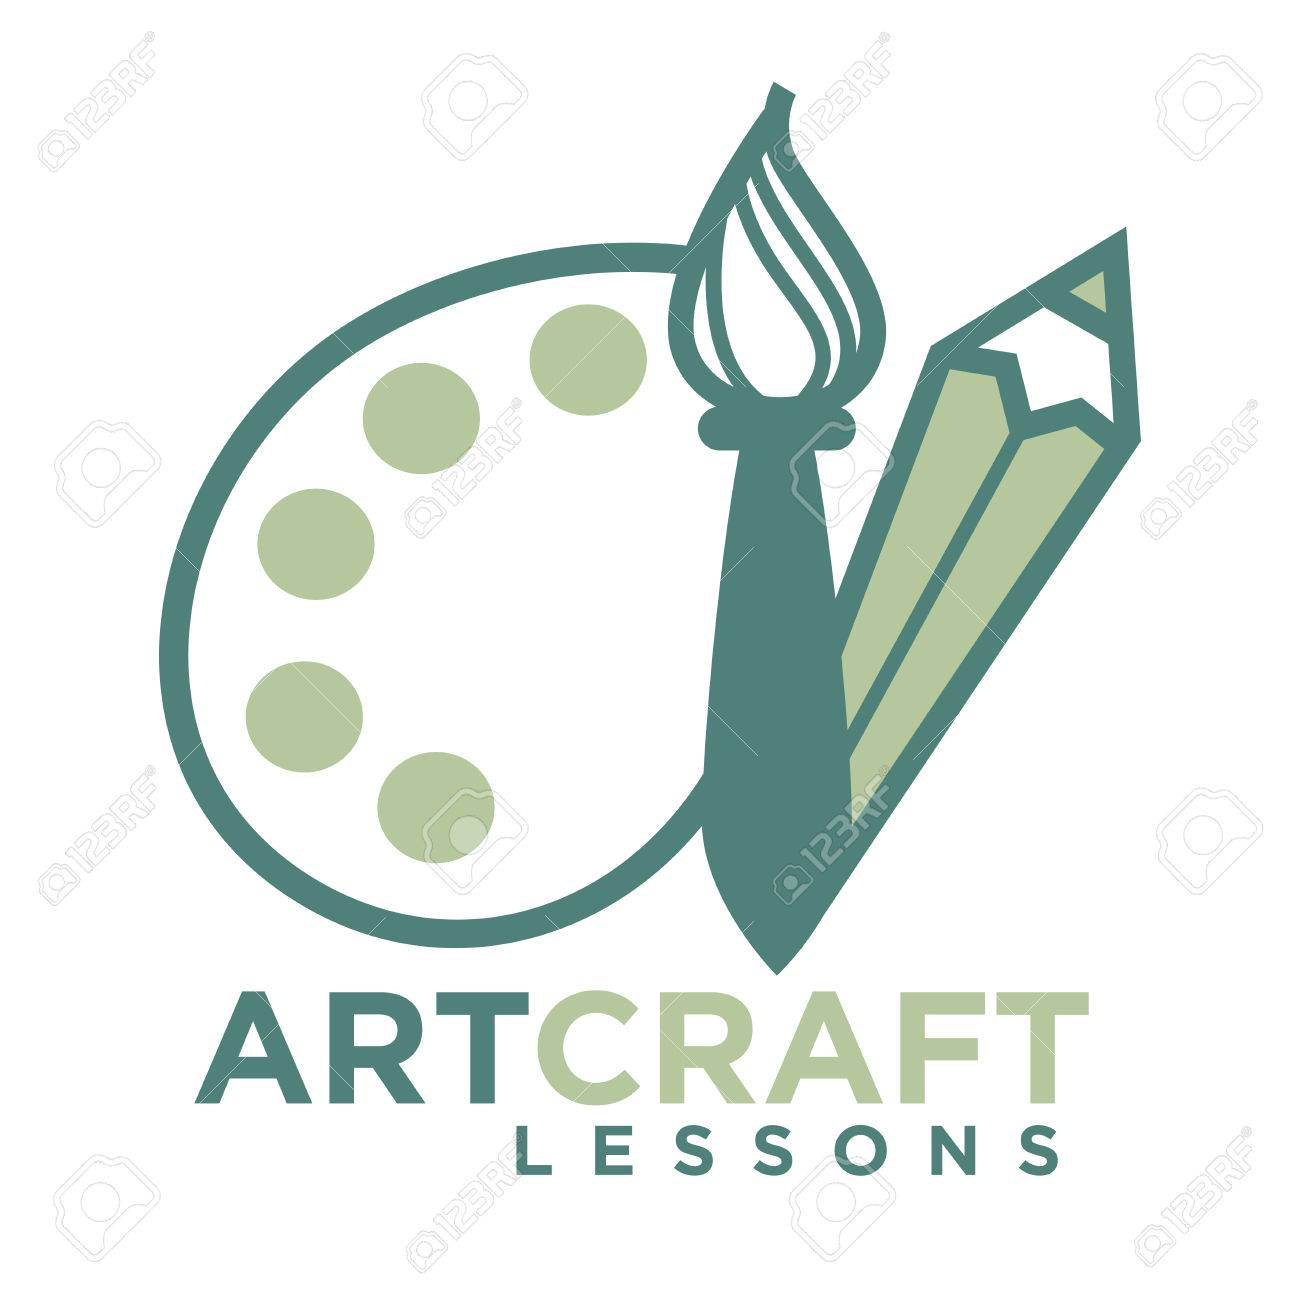 Artcraft Logo Emblem With Pencil And Brush With Palette Royalty Free